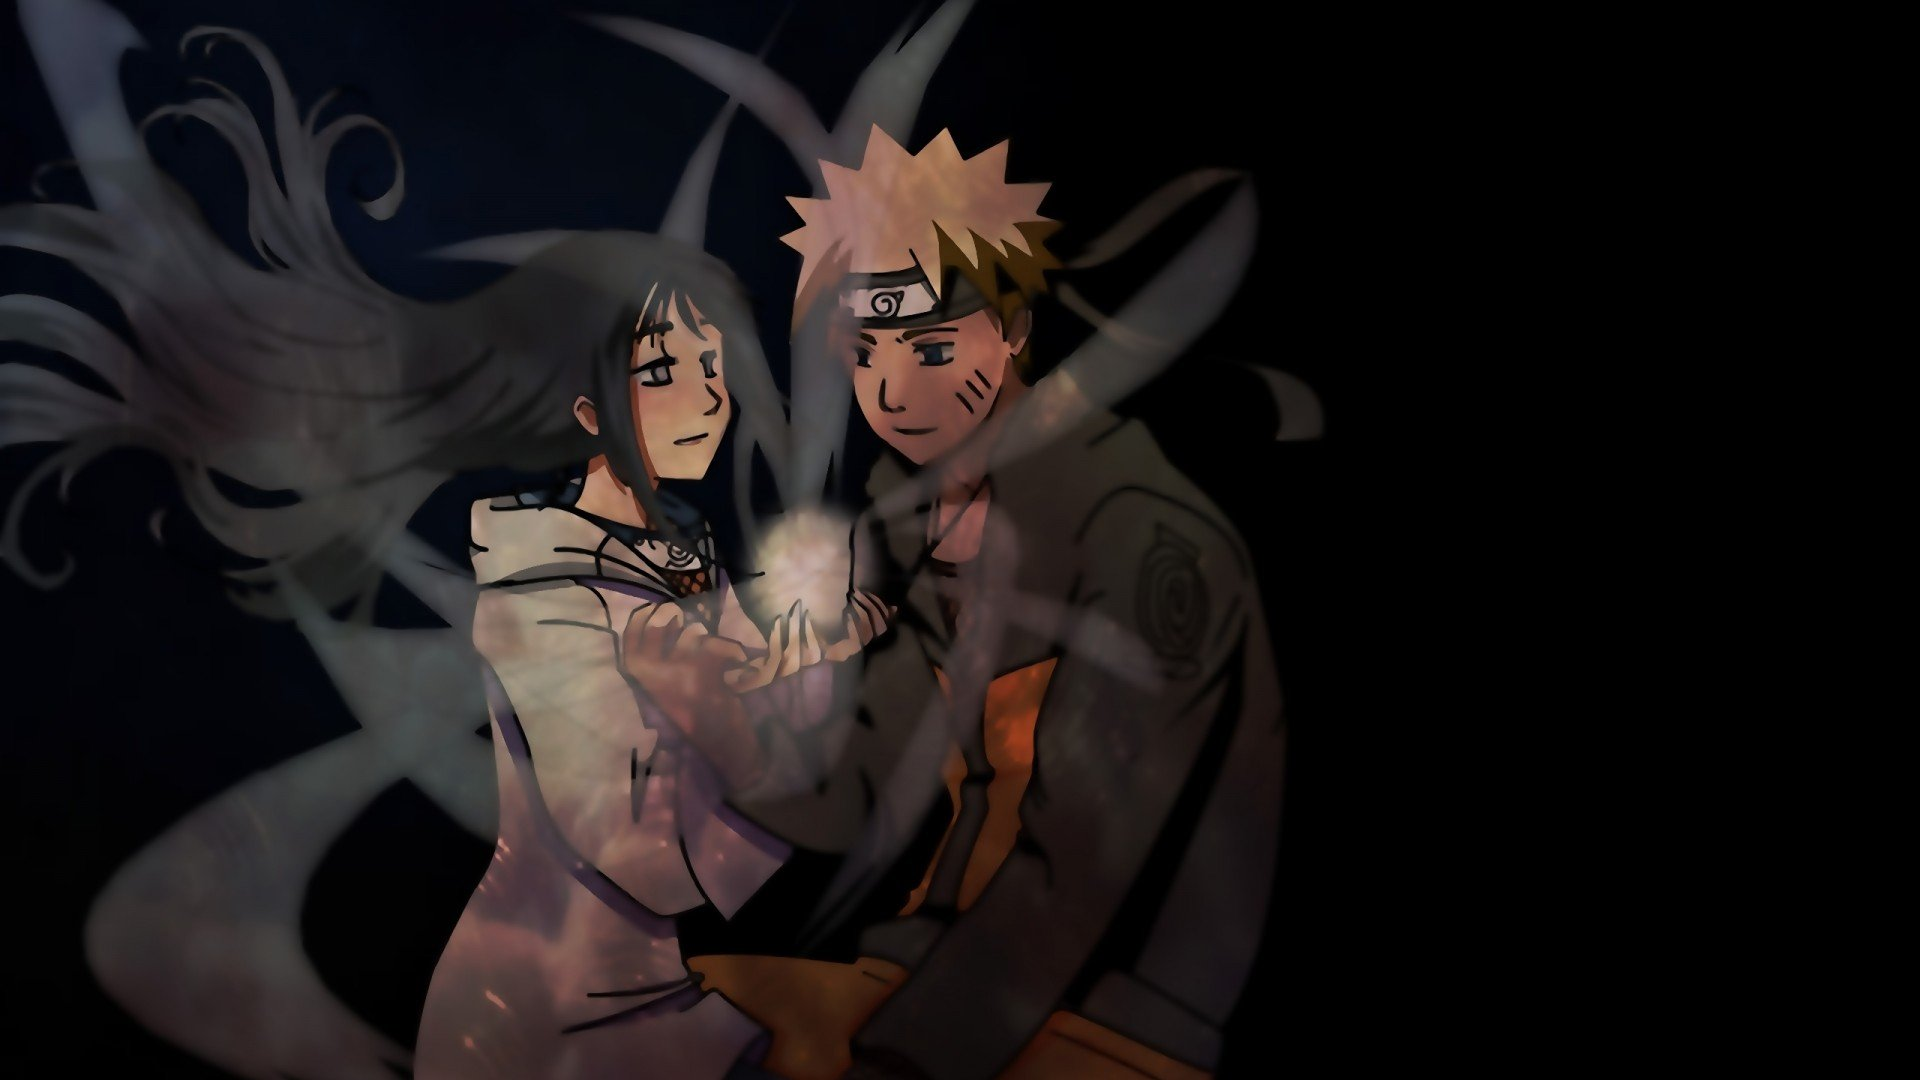 Naruto and hinata wallpaper hd 010